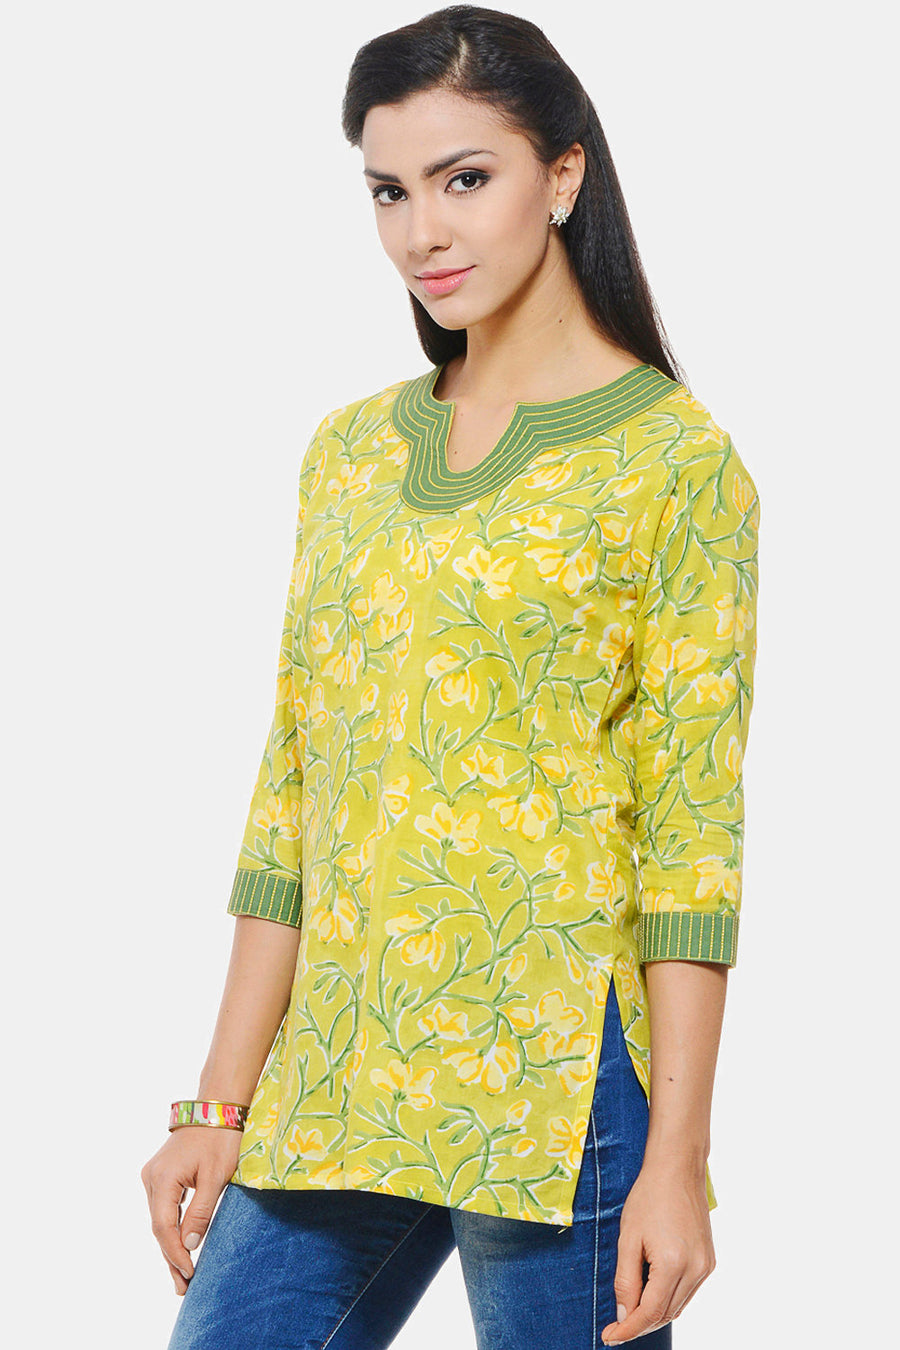 Hand Block Printed Indian Tunic in pastel green floral design with Embroidery on neck and sleeves